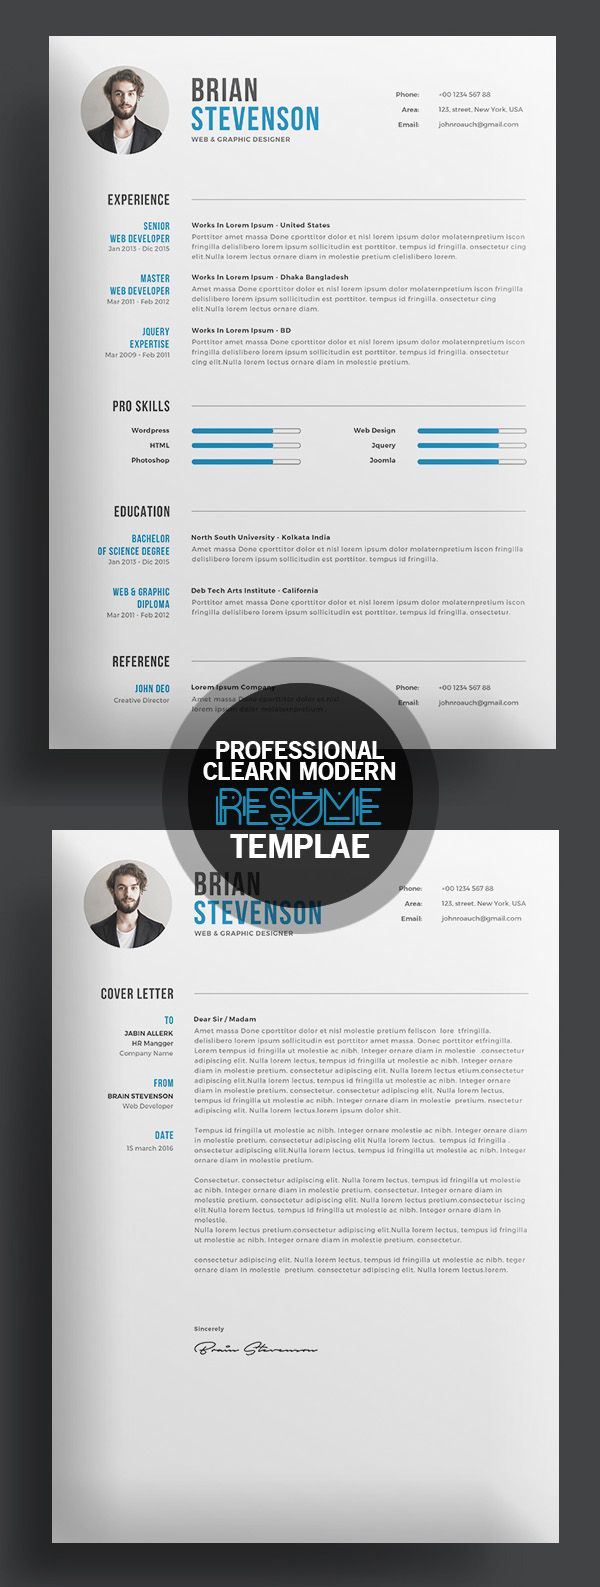 creative clearn professional resume template misc creative clearn professional resume template